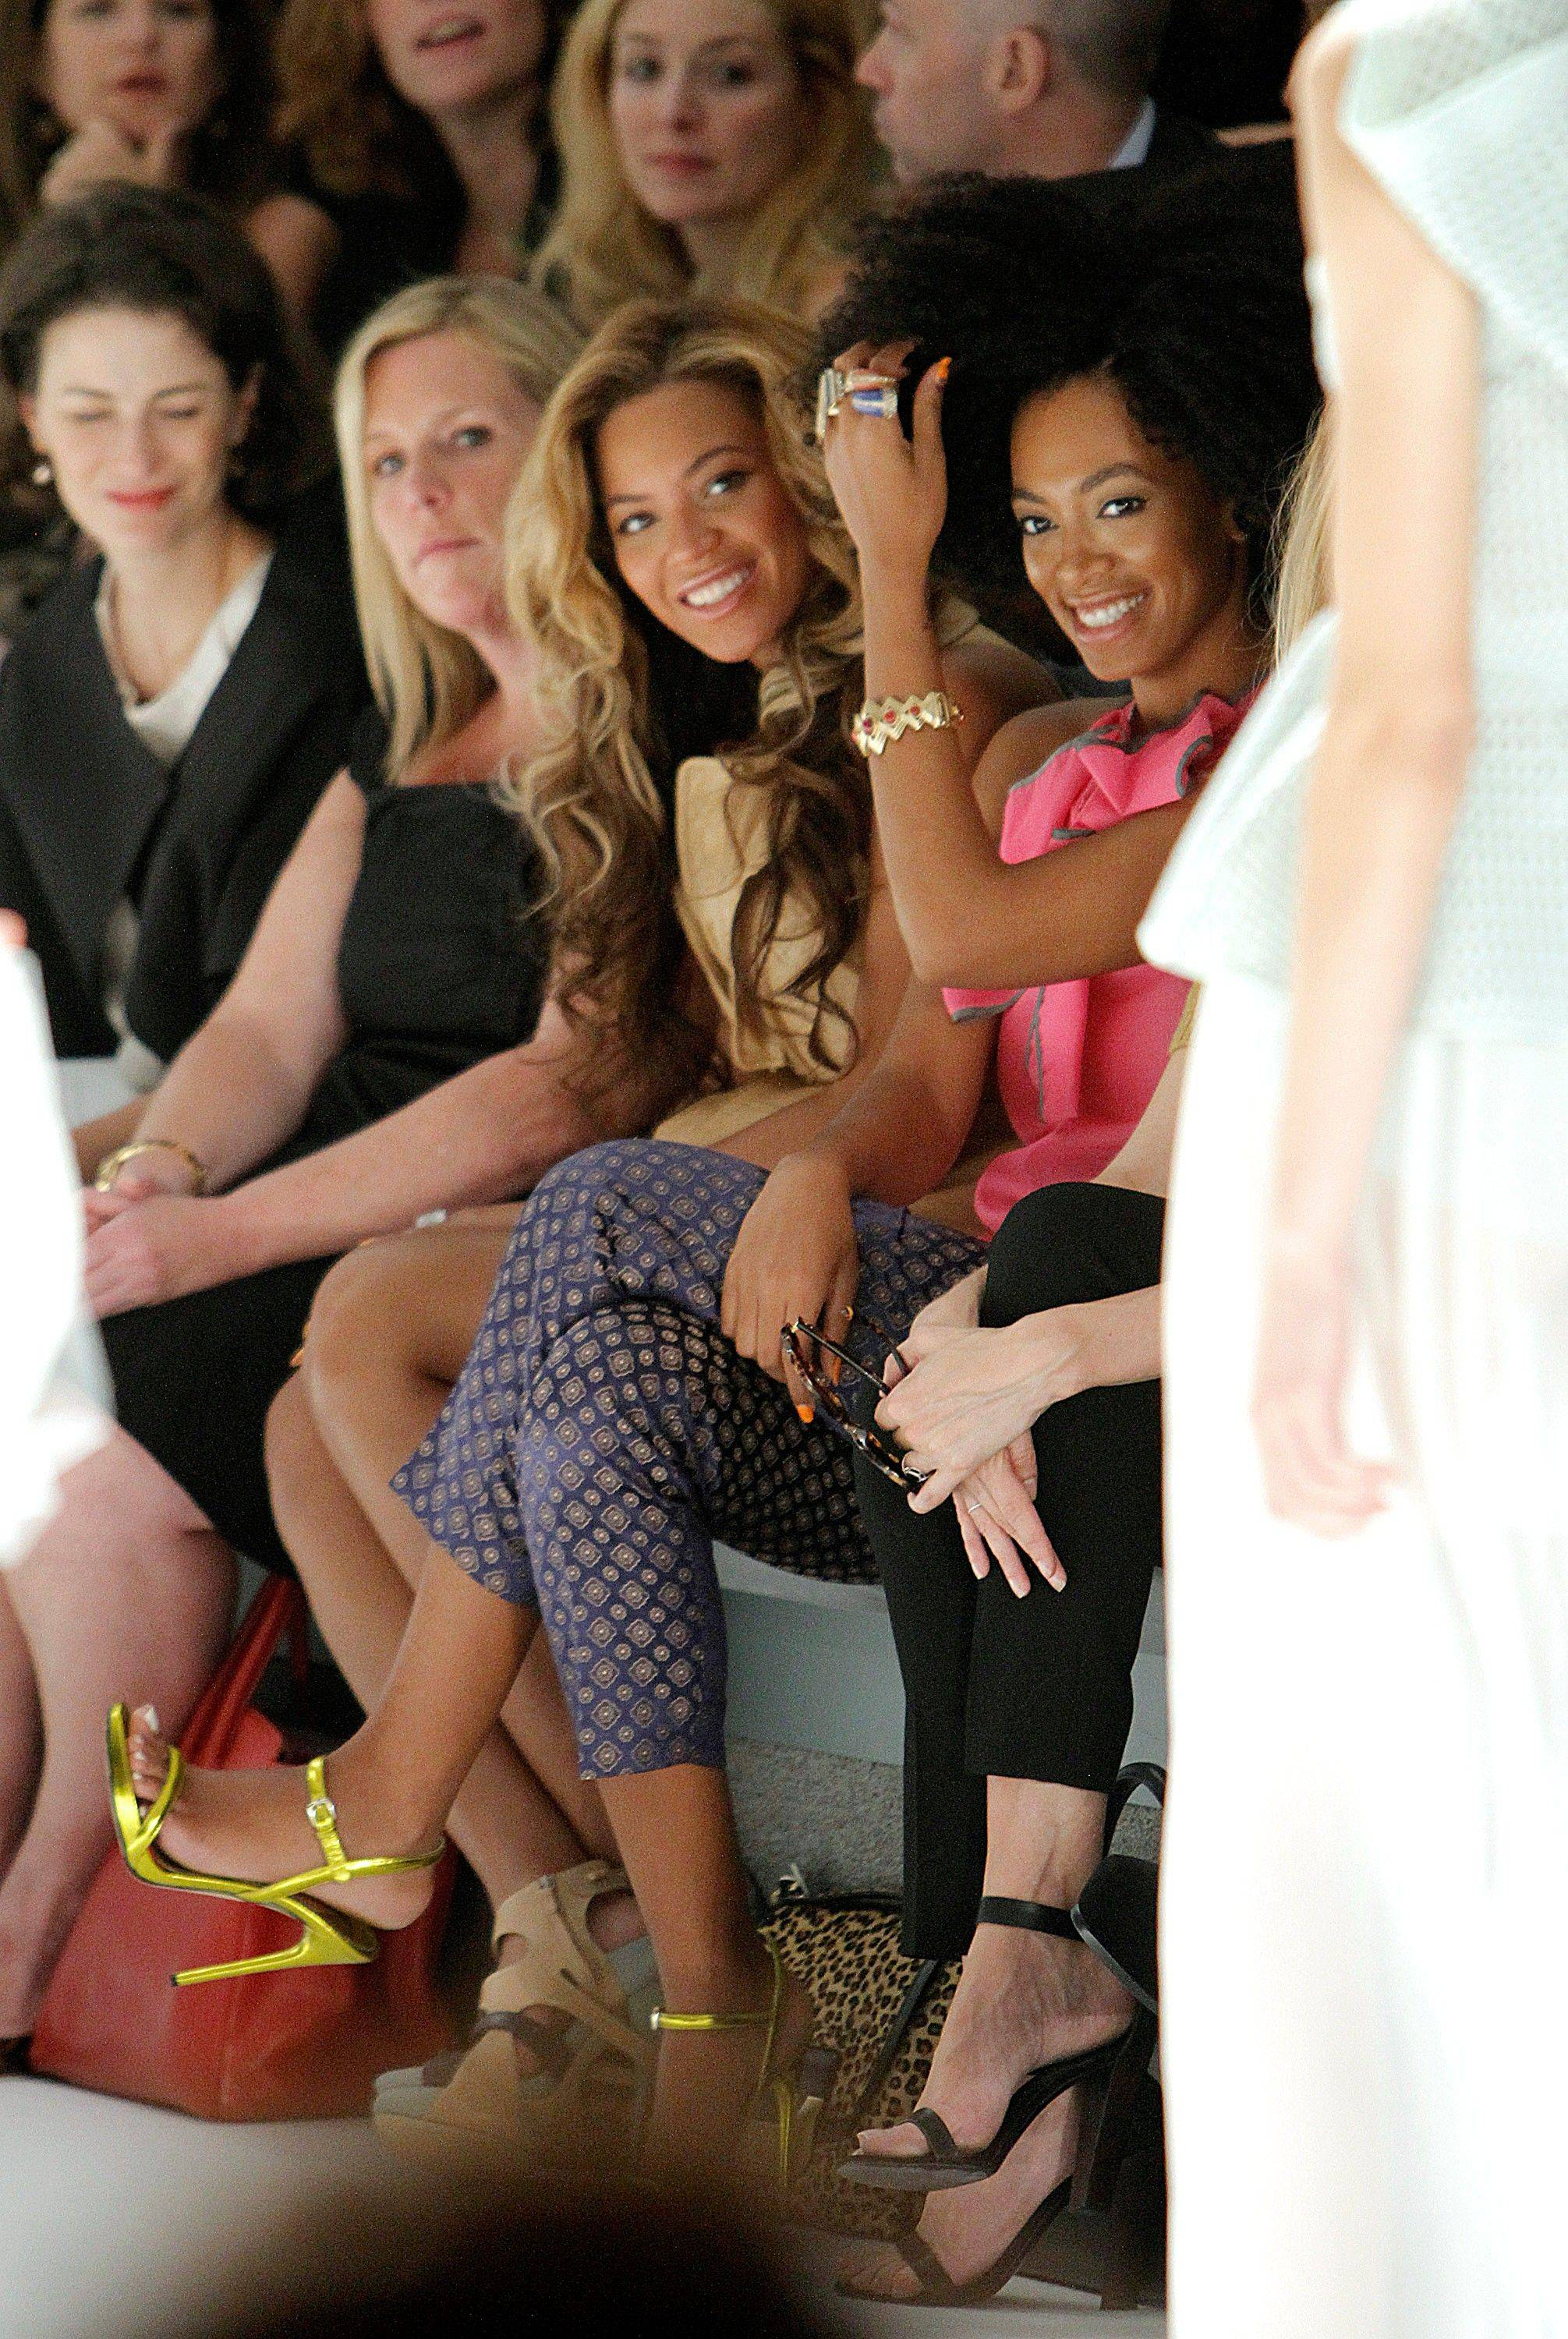 Singers Beyonce Knowles, center, and her sister Solange Knowles, seated right, attend the Vera Wang 2012 Spring collection during Mercedes Benz Fashion Week at Lincoln Center on Tuesday, Sept. 13, 2011.